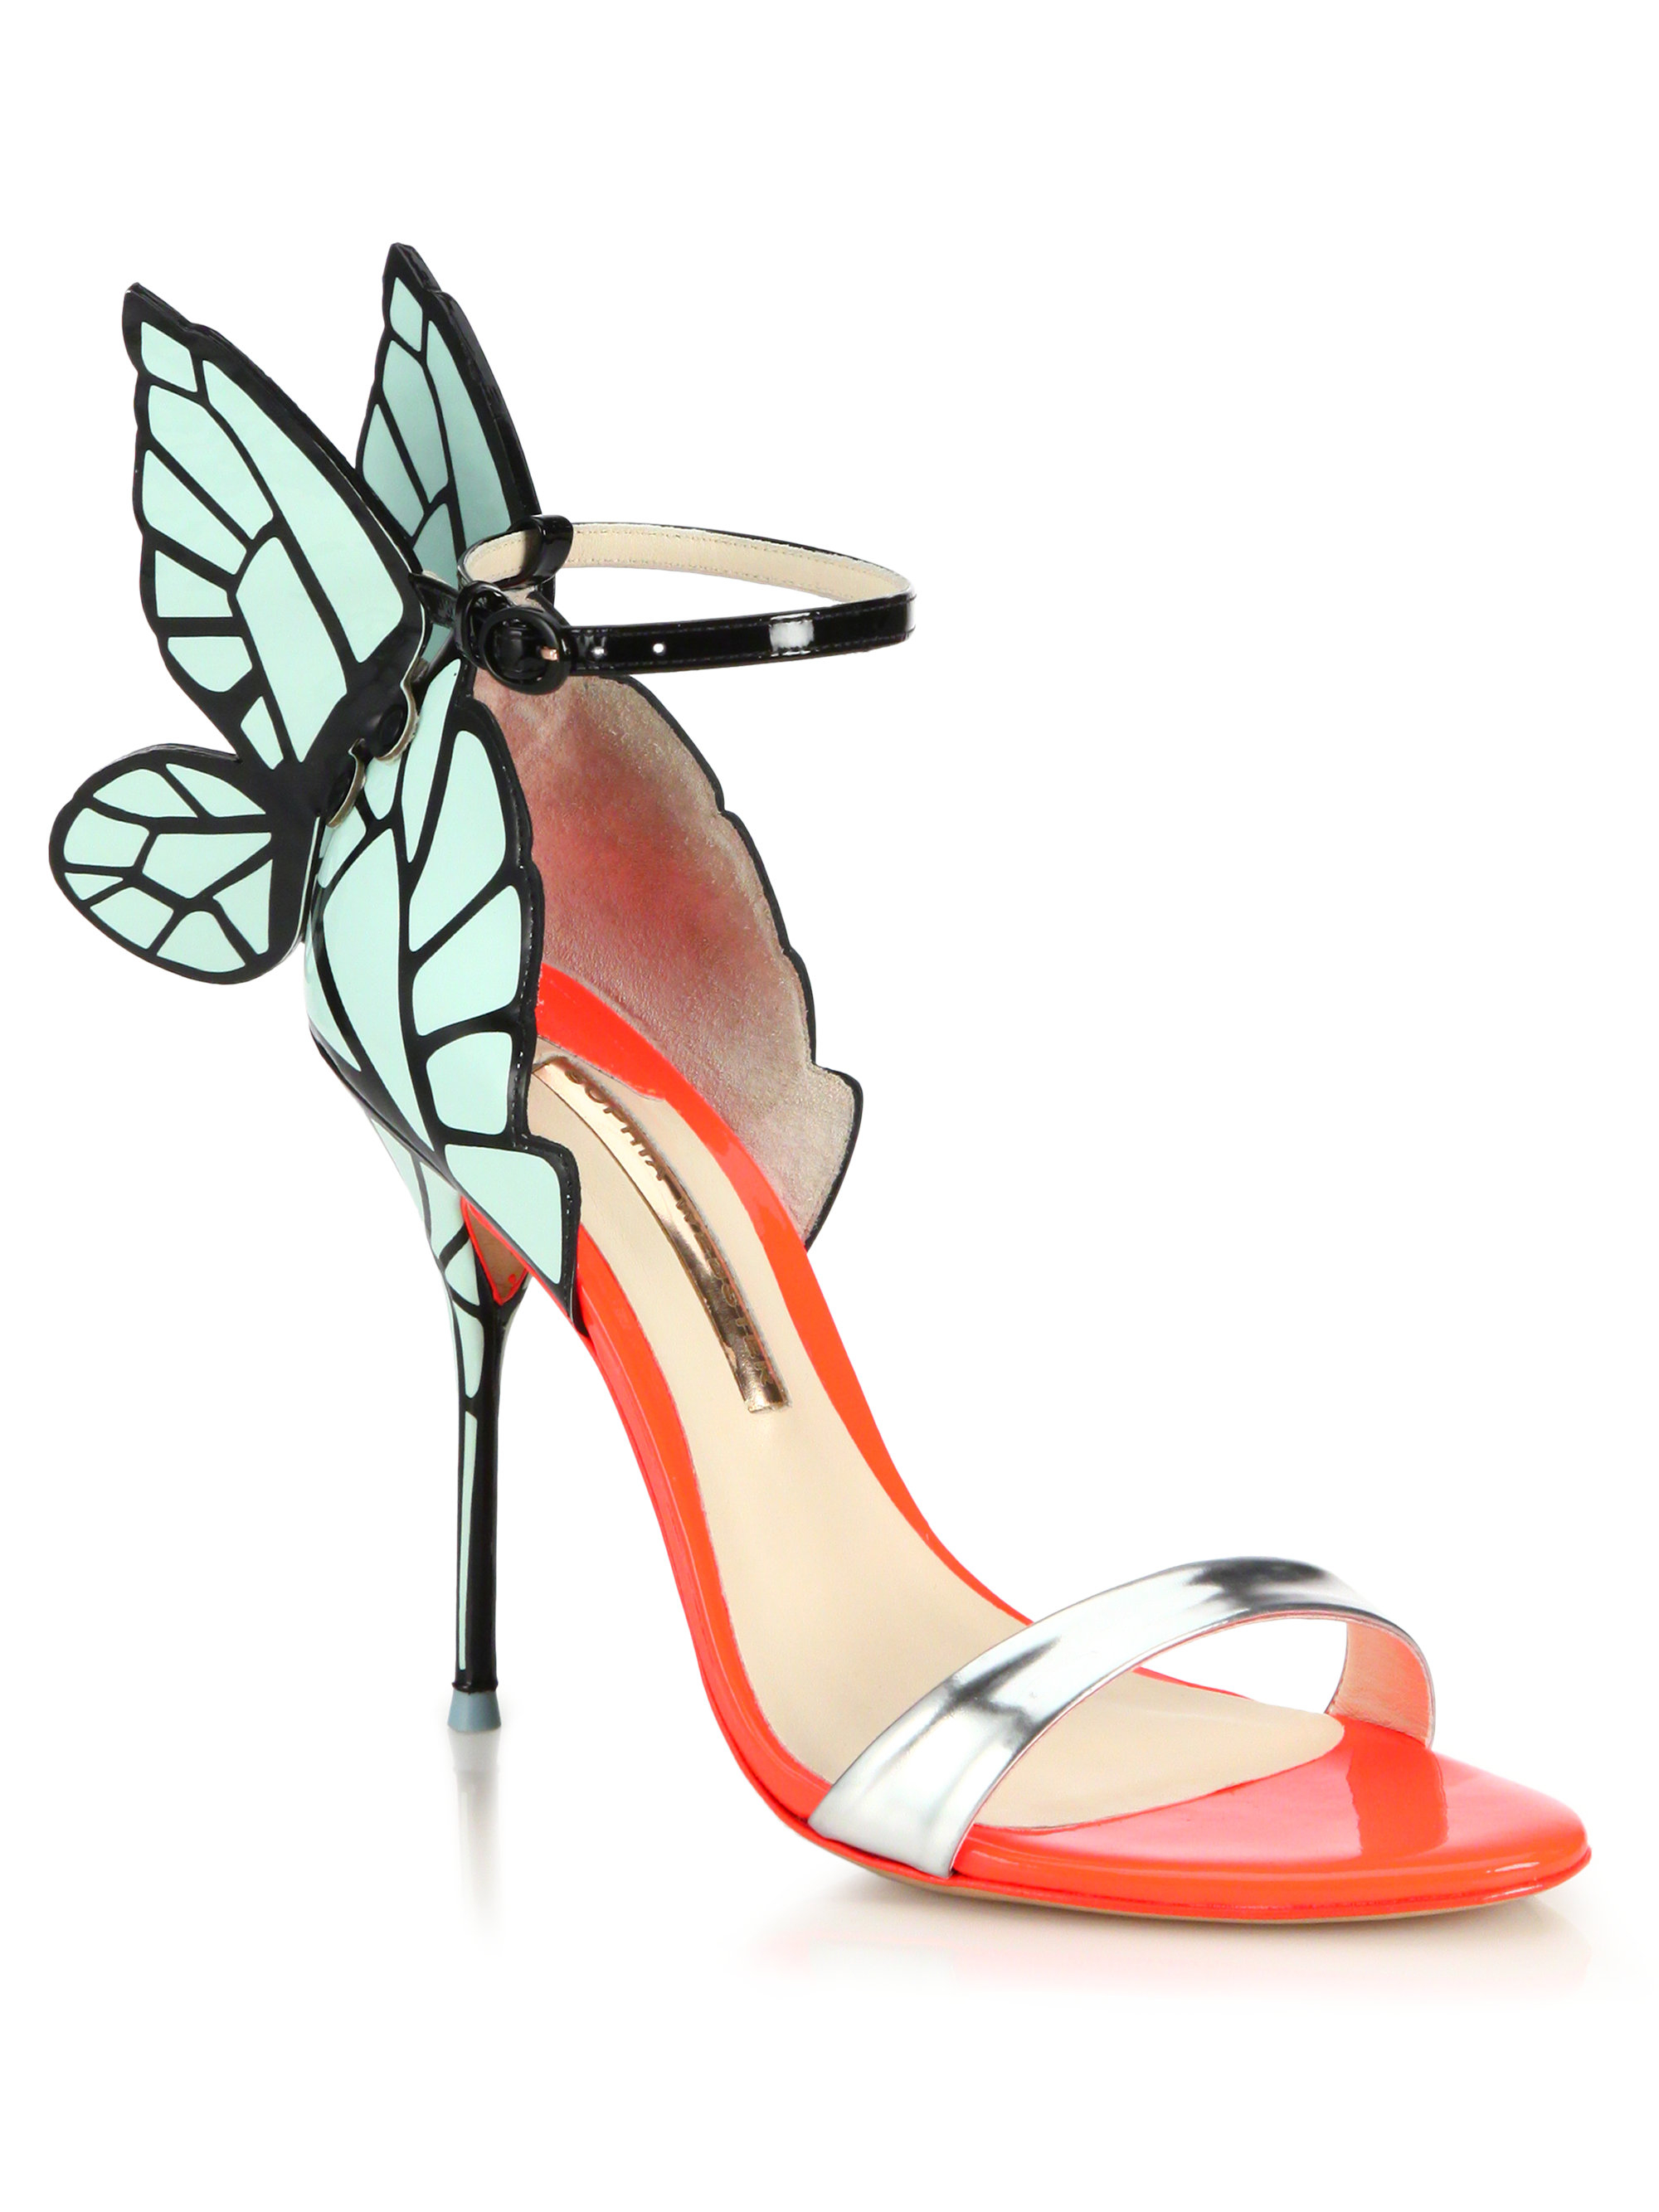 920d69646ff2 Lyst - Sophia Webster Chiara Butterfly Patent Leather Sandals in Green